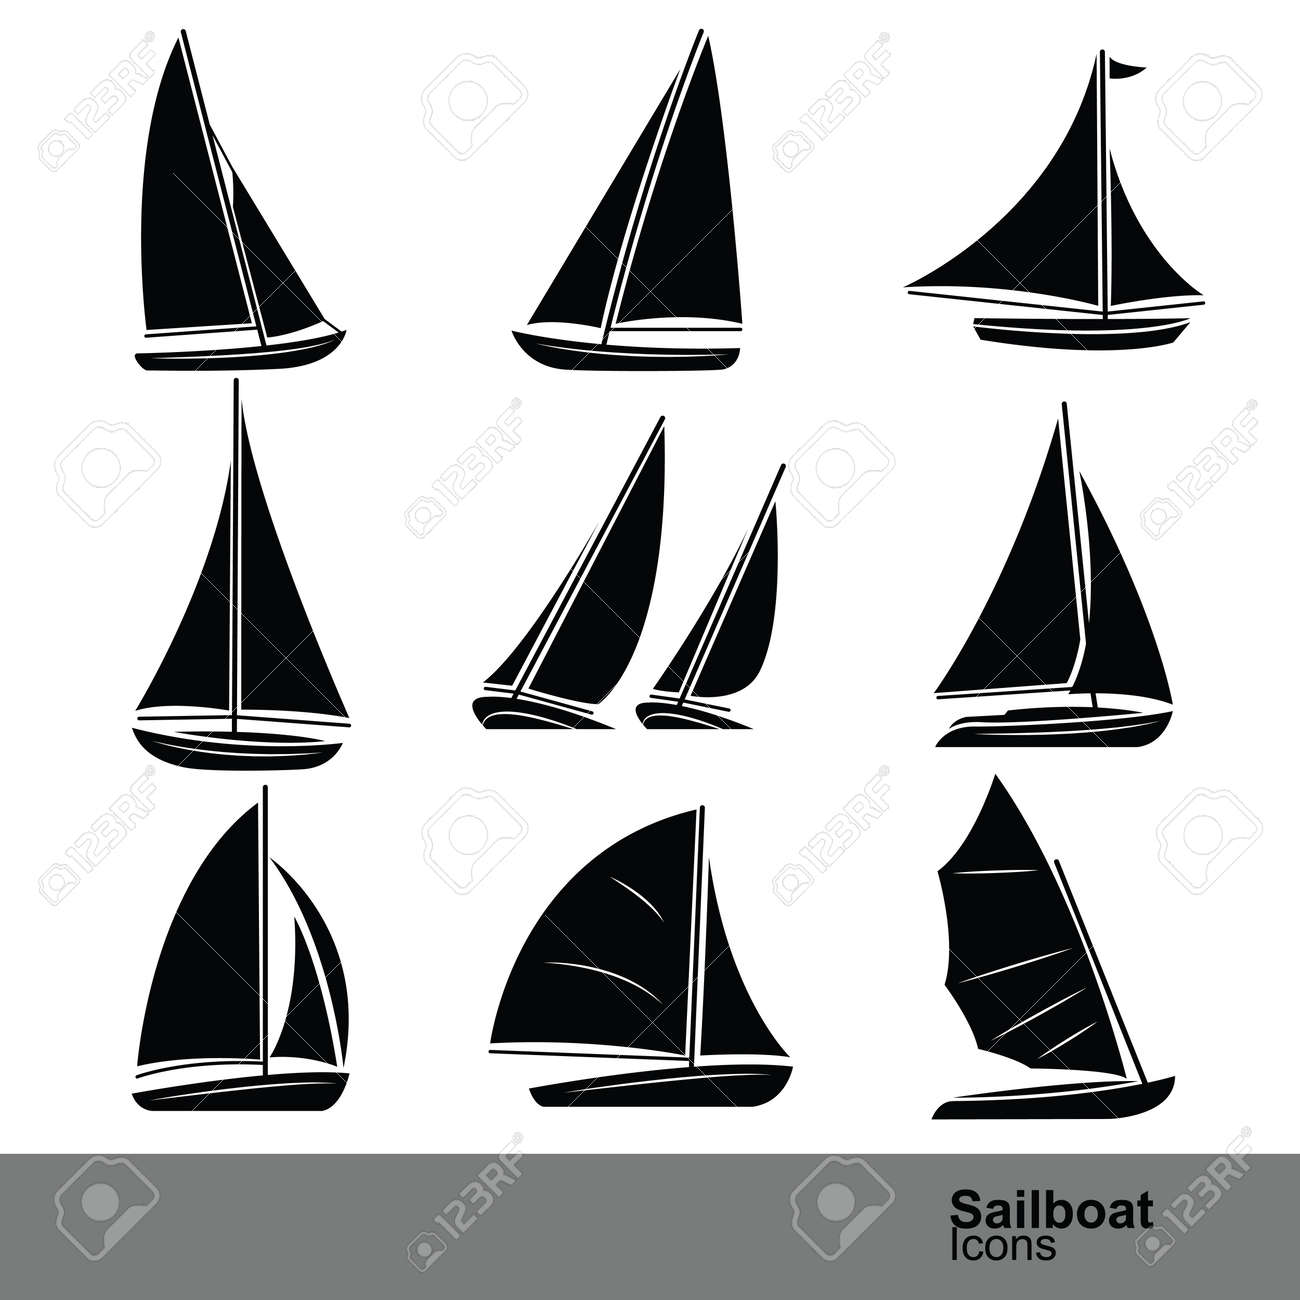 sailboat silhouette icon set ,vector illustration royalty free